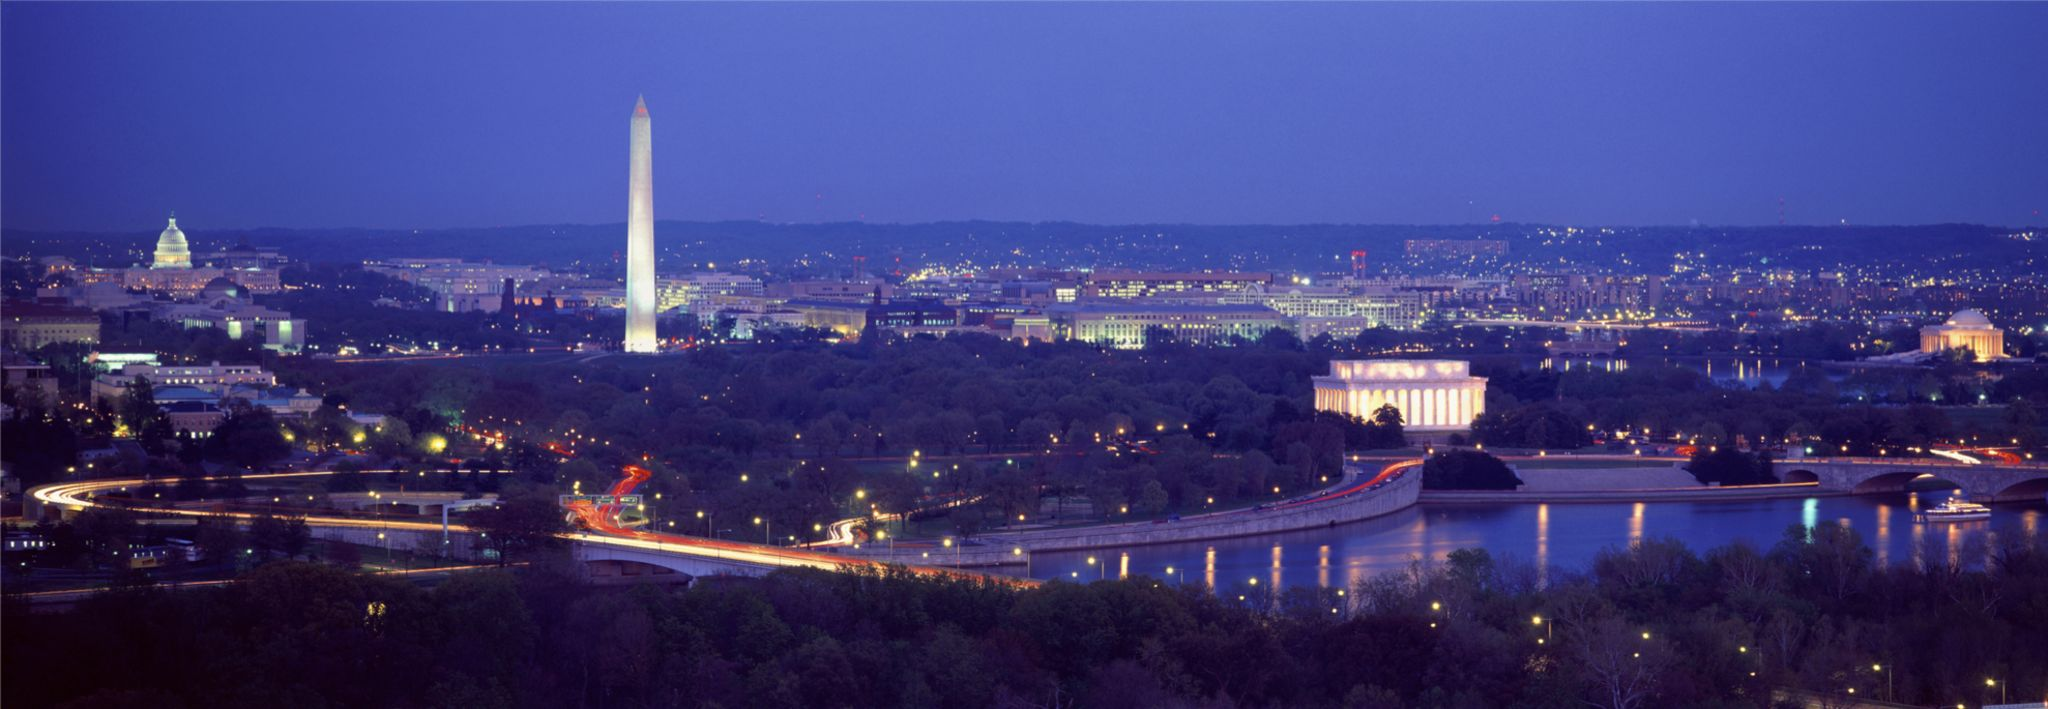 Beautiful view of Washington D.C. at night.